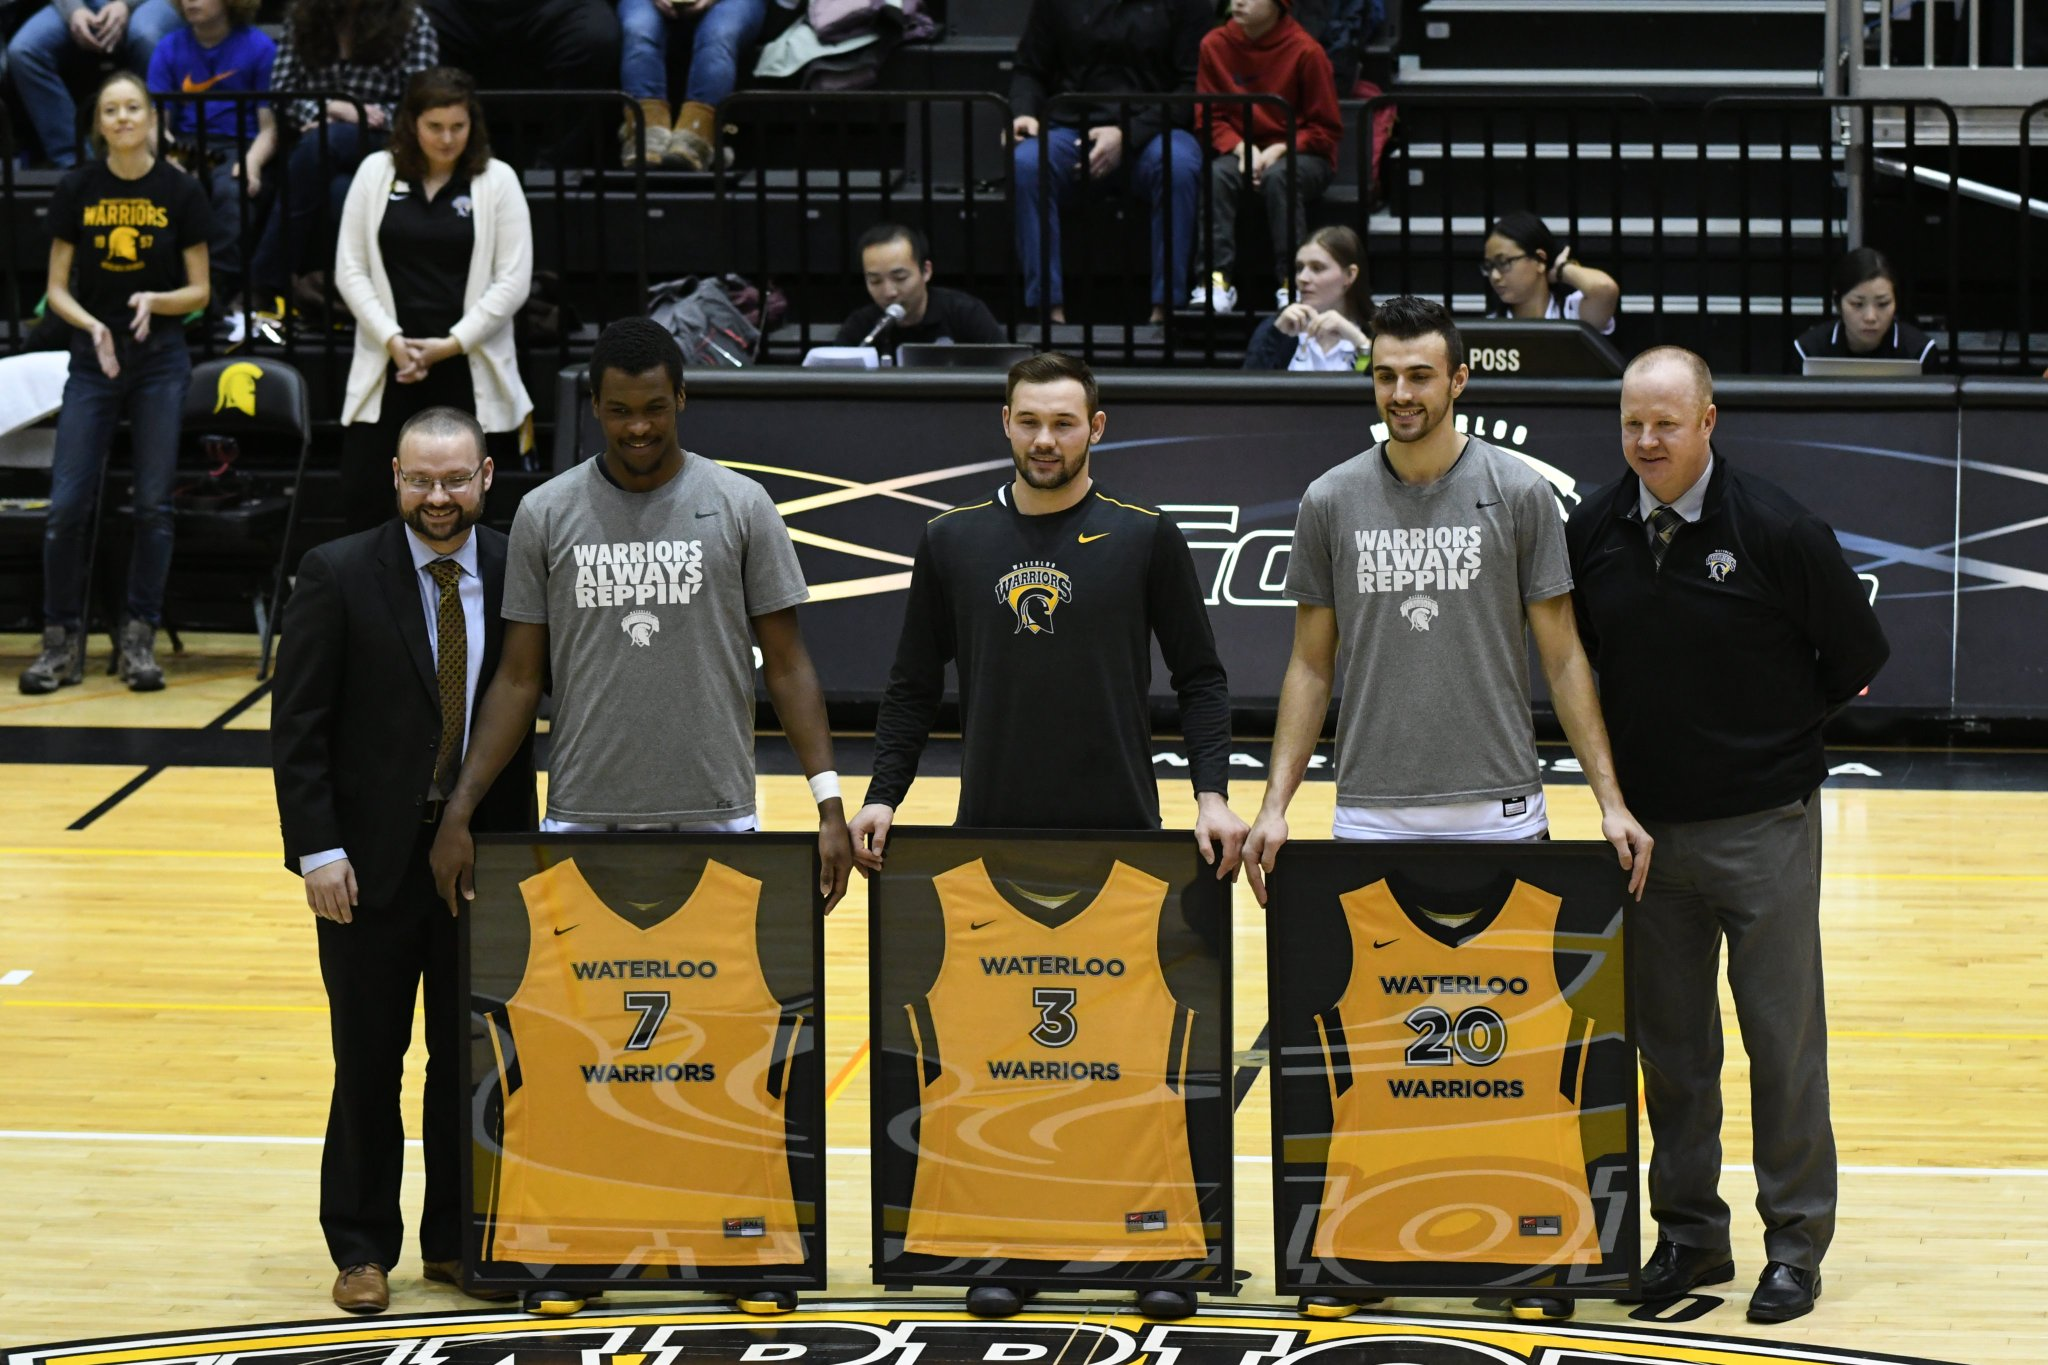 Seniors honoured at #UWaterlooFAD @WlooWarriors mens basketball game.  #7 Ben Davis, #3 Jon Ravenhorst, and #20 Mike Pereira. https://t.co/coDxxA6mhg